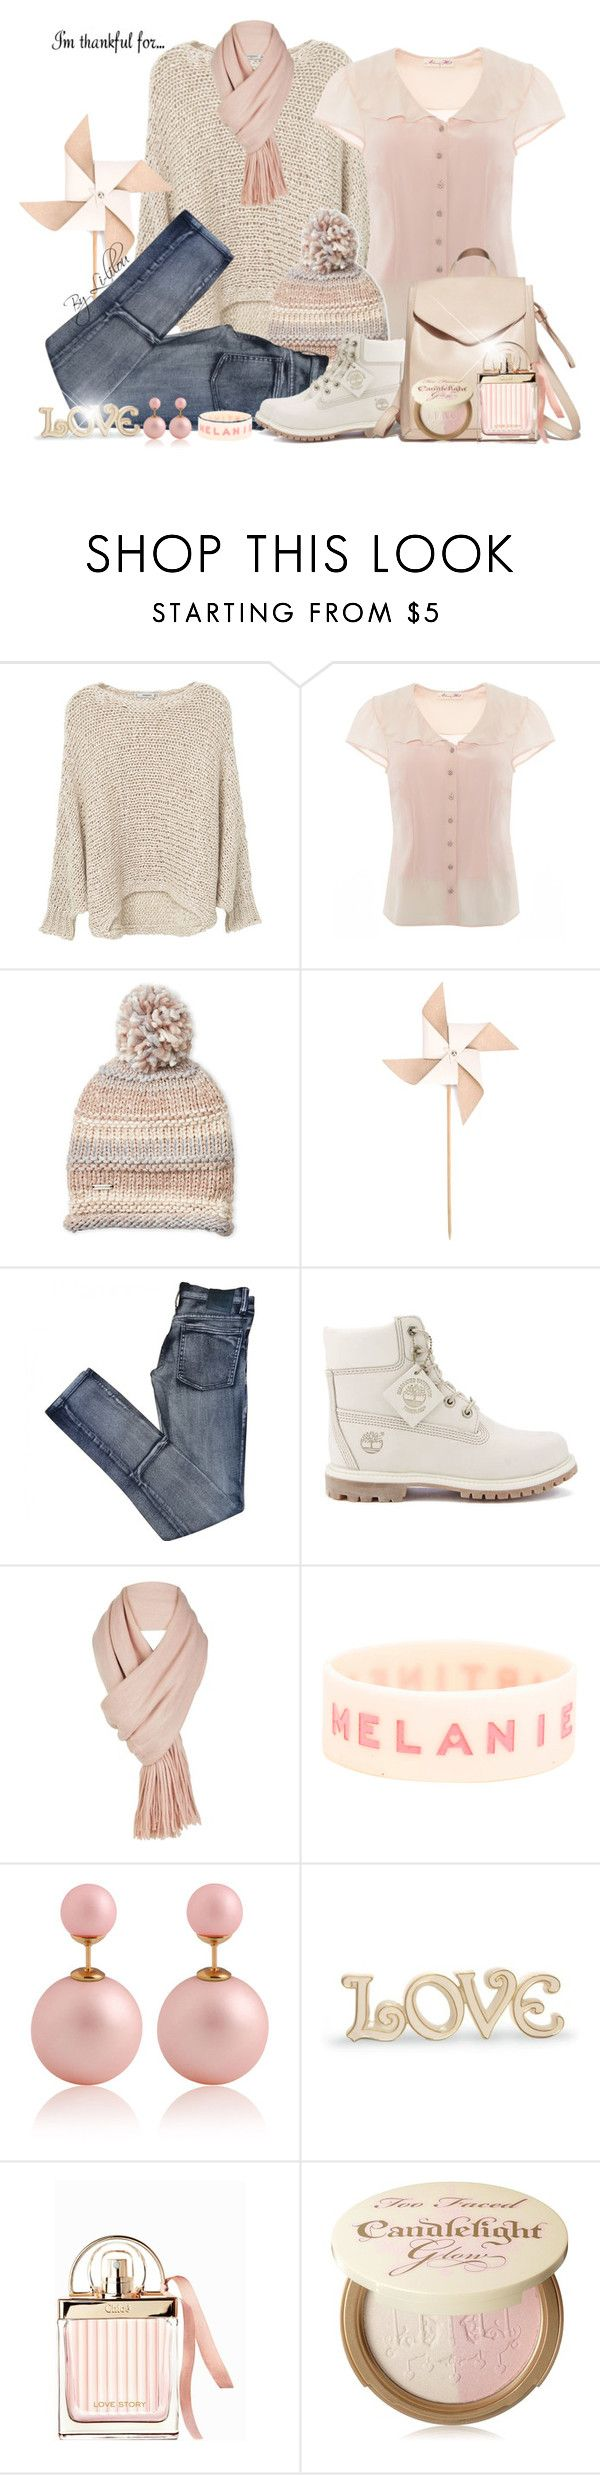 """""""Nude Day"""" by li-lilou ❤ liked on Polyvore featuring MANGO, Steve Madden, Hender Scheme, Cheap Monday, Timberland, Free People, Lenox, Loeffler Randall, Chloé and Too Faced Cosmetics"""